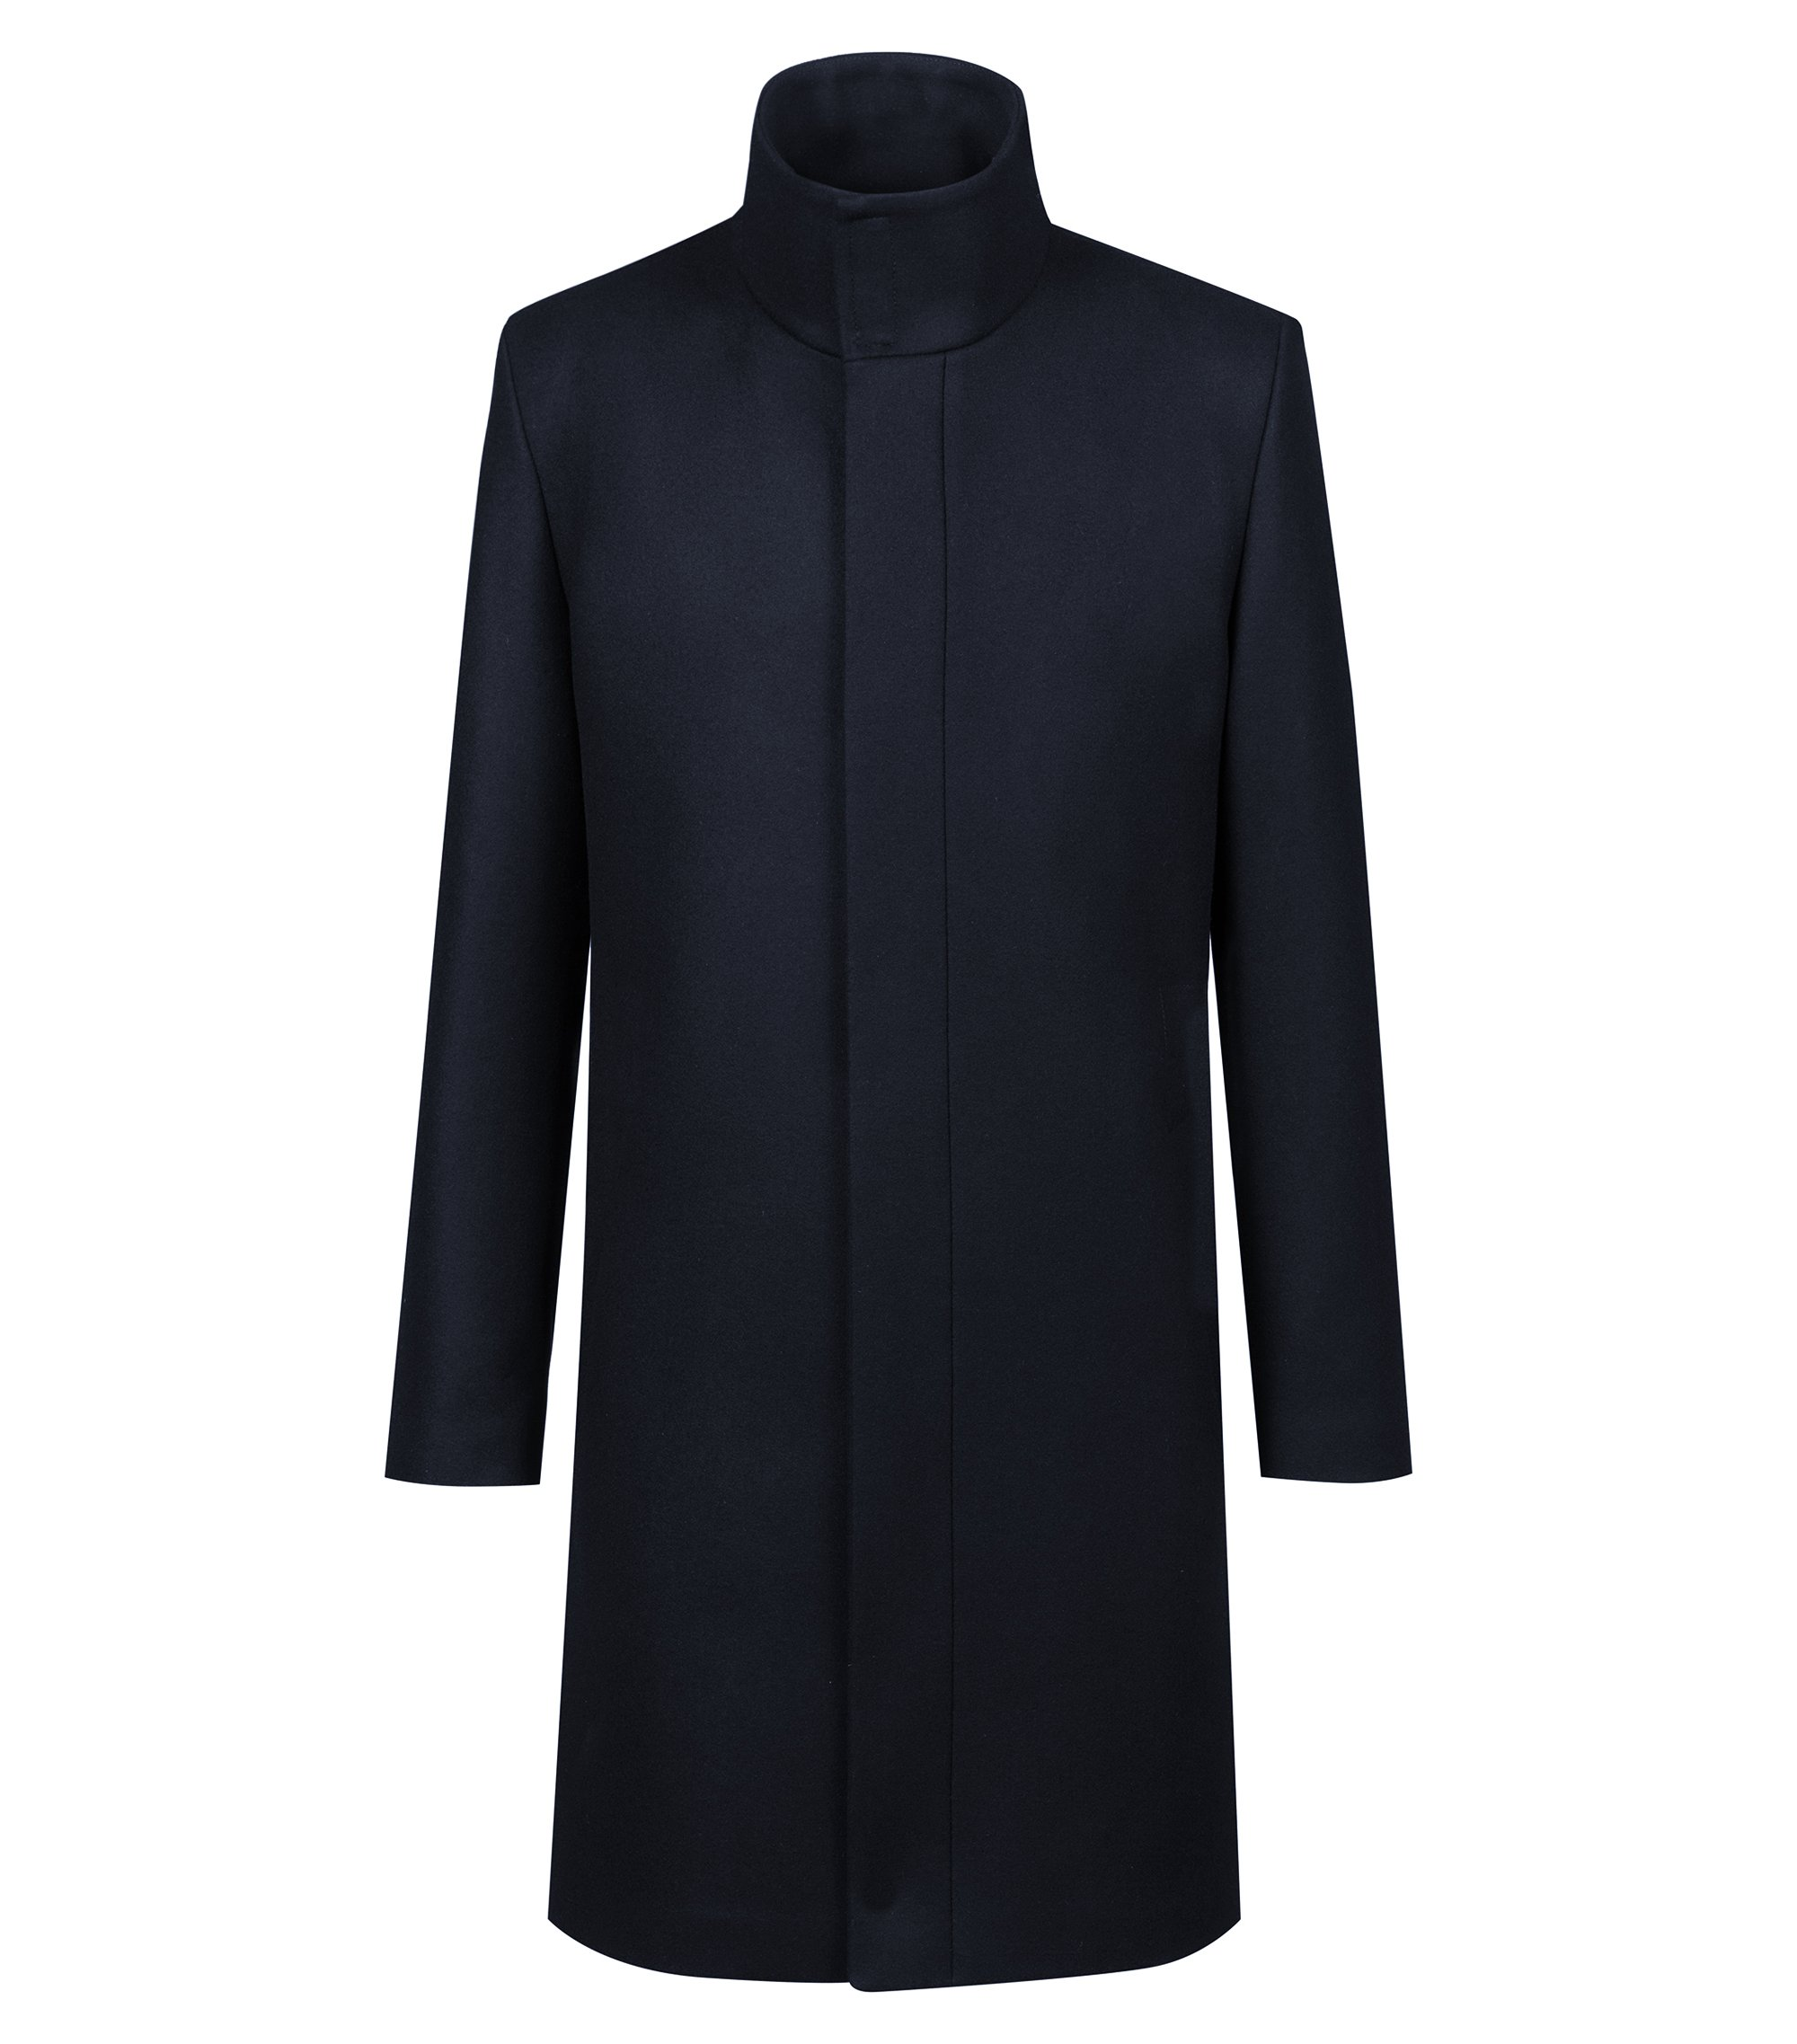 Bits & Bytes Capsule trench coat in a wool blend, Dark Blue